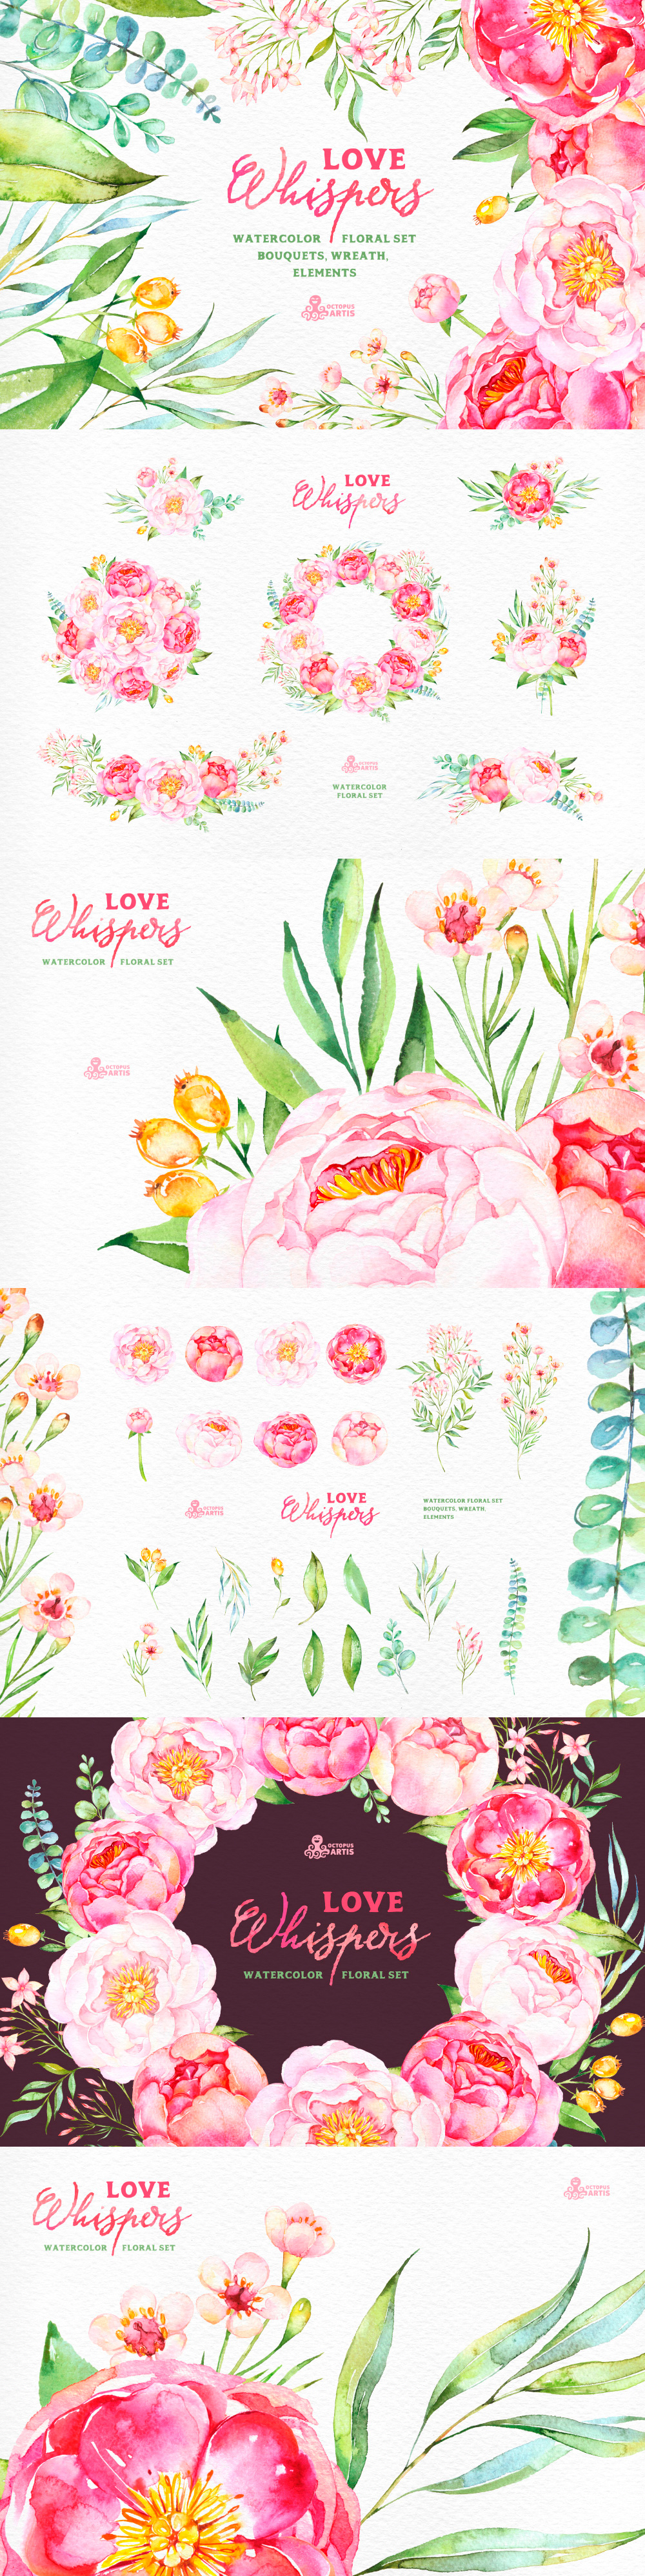 watercolor floral flowers clip art set pink green Hand-painted bouquets Clip Art Feminine / Girly Graphics / PNG / Stock Images for Wedding Invitations or Party Invites